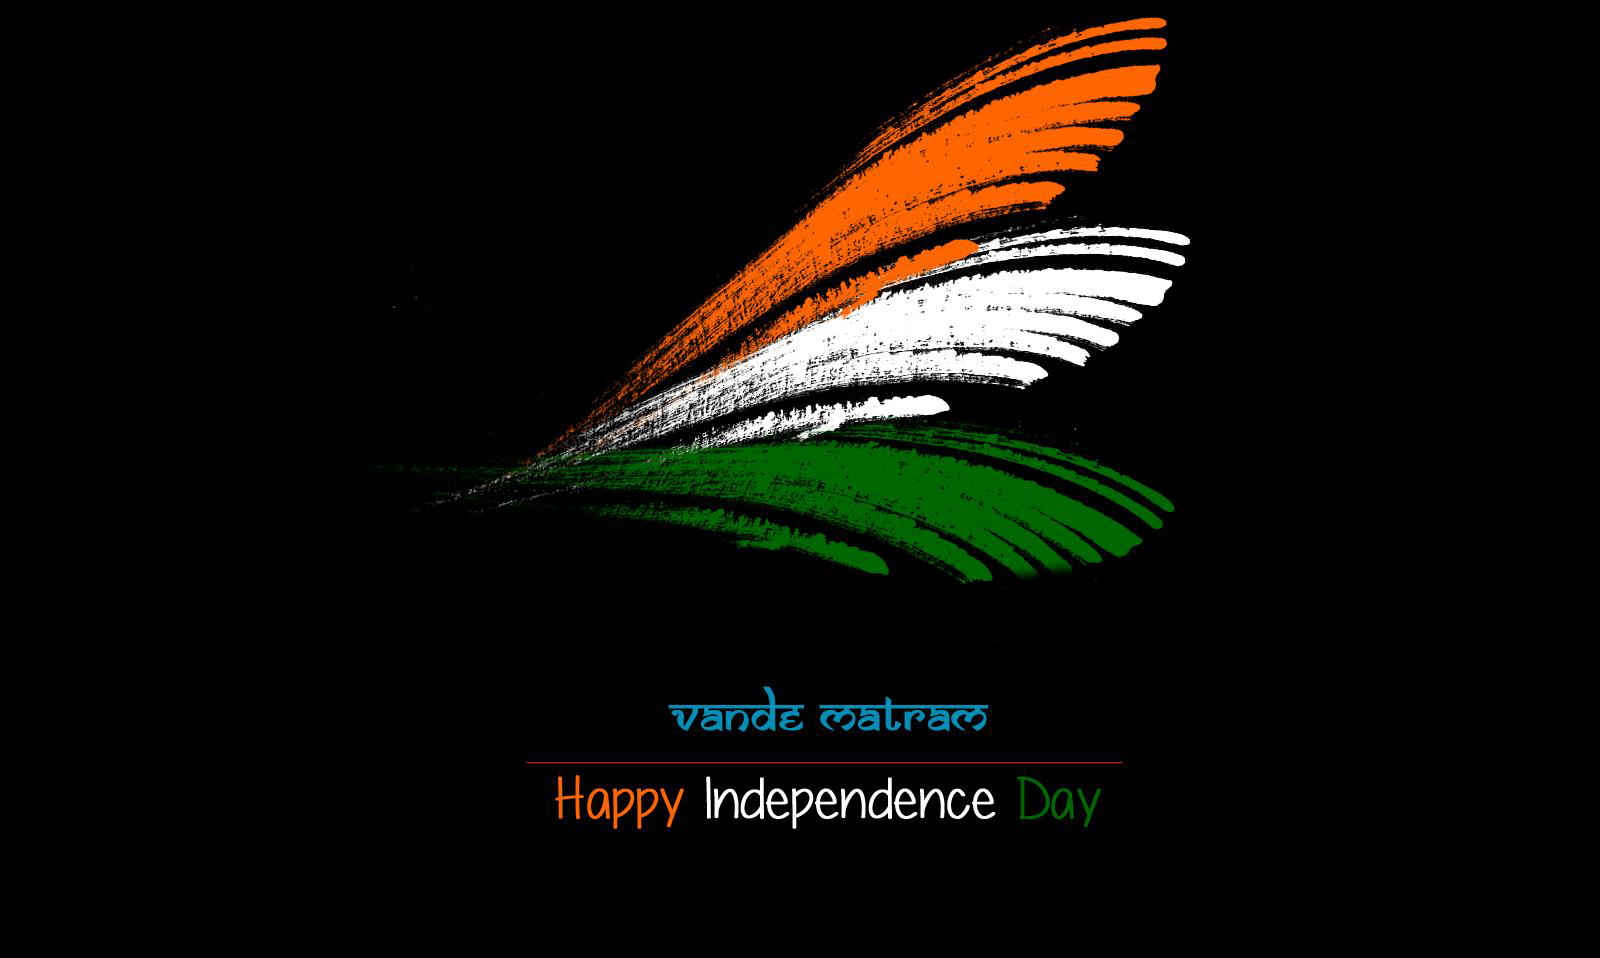 Vande-Mataram-Happy-Independence-Day-hd-pics-images-free